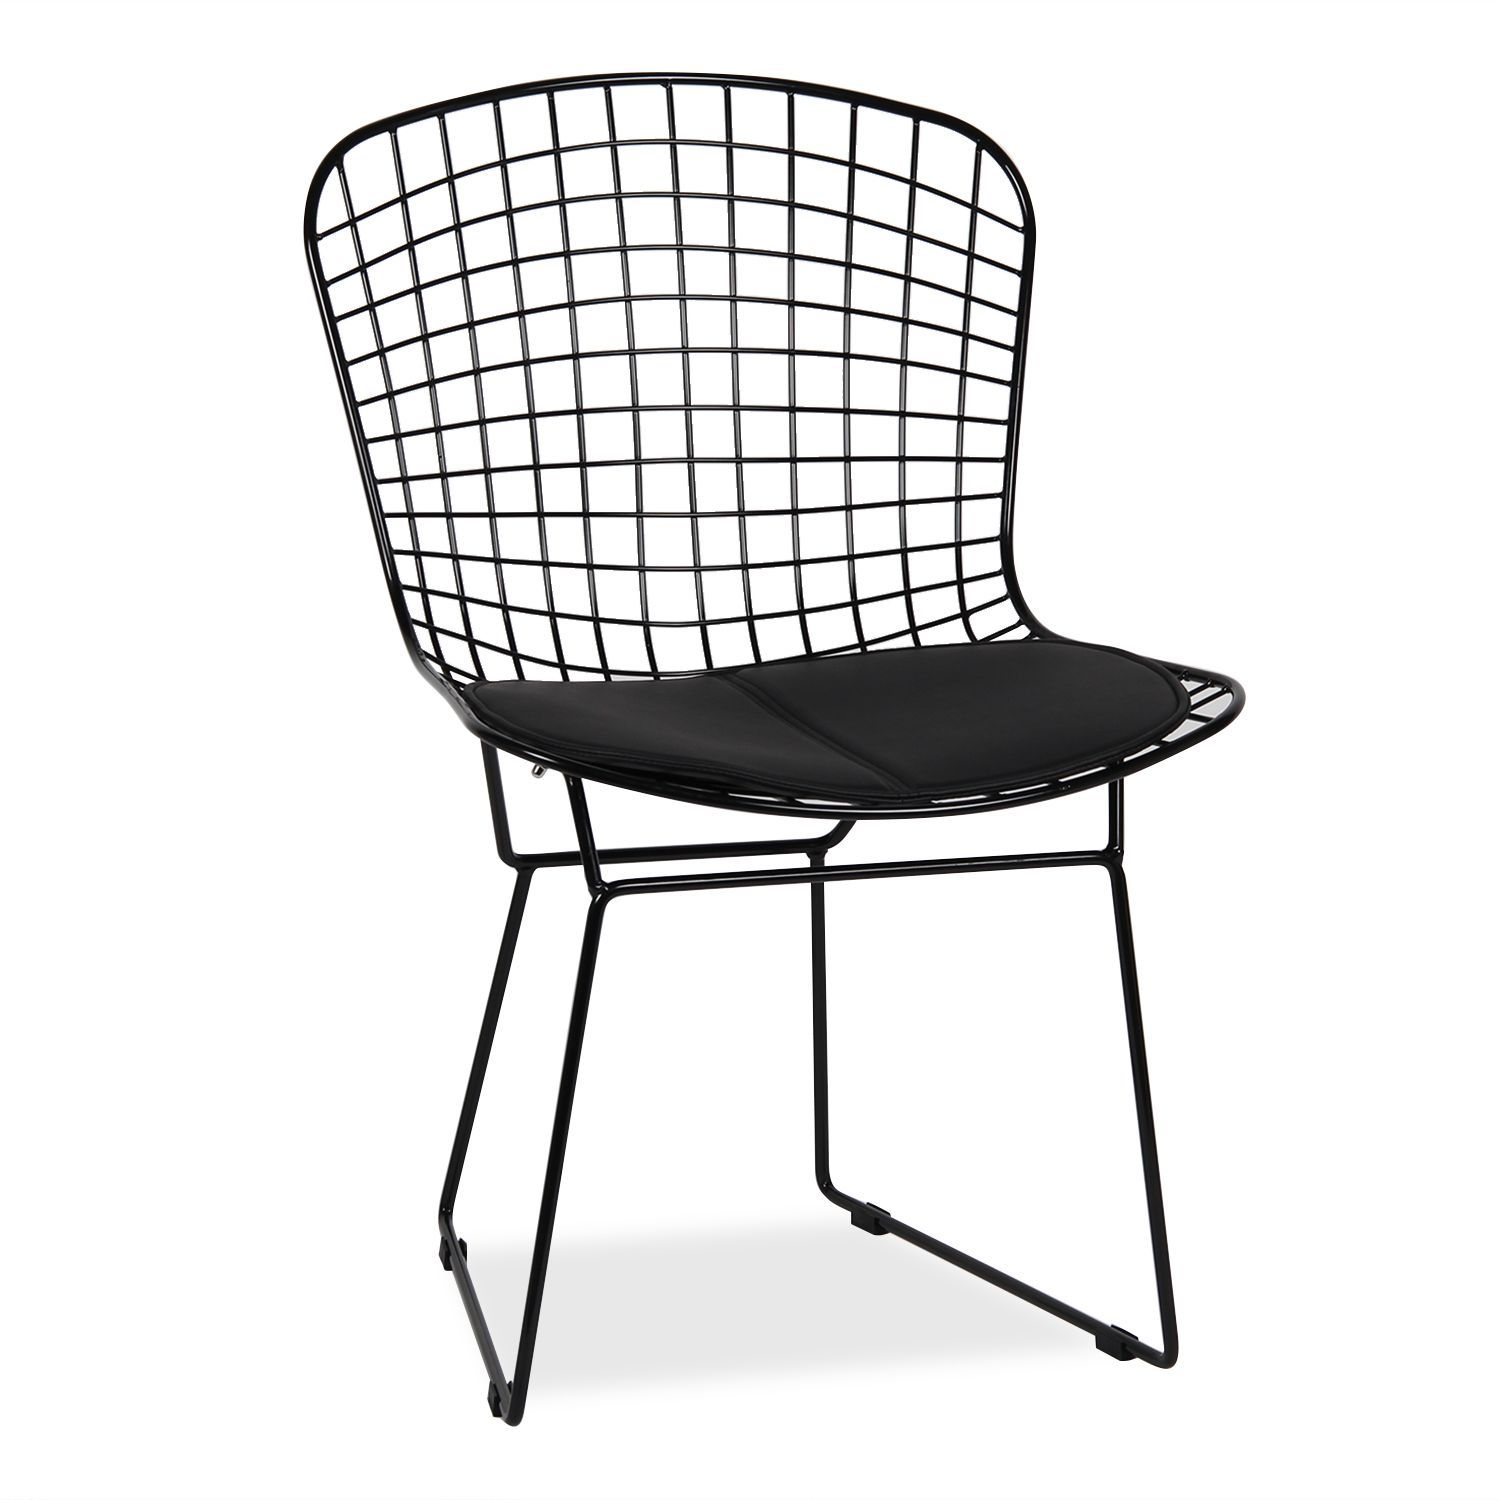 Cc Wohndesign: Craft And Design Merge To Create A Chair That Is A Symbol